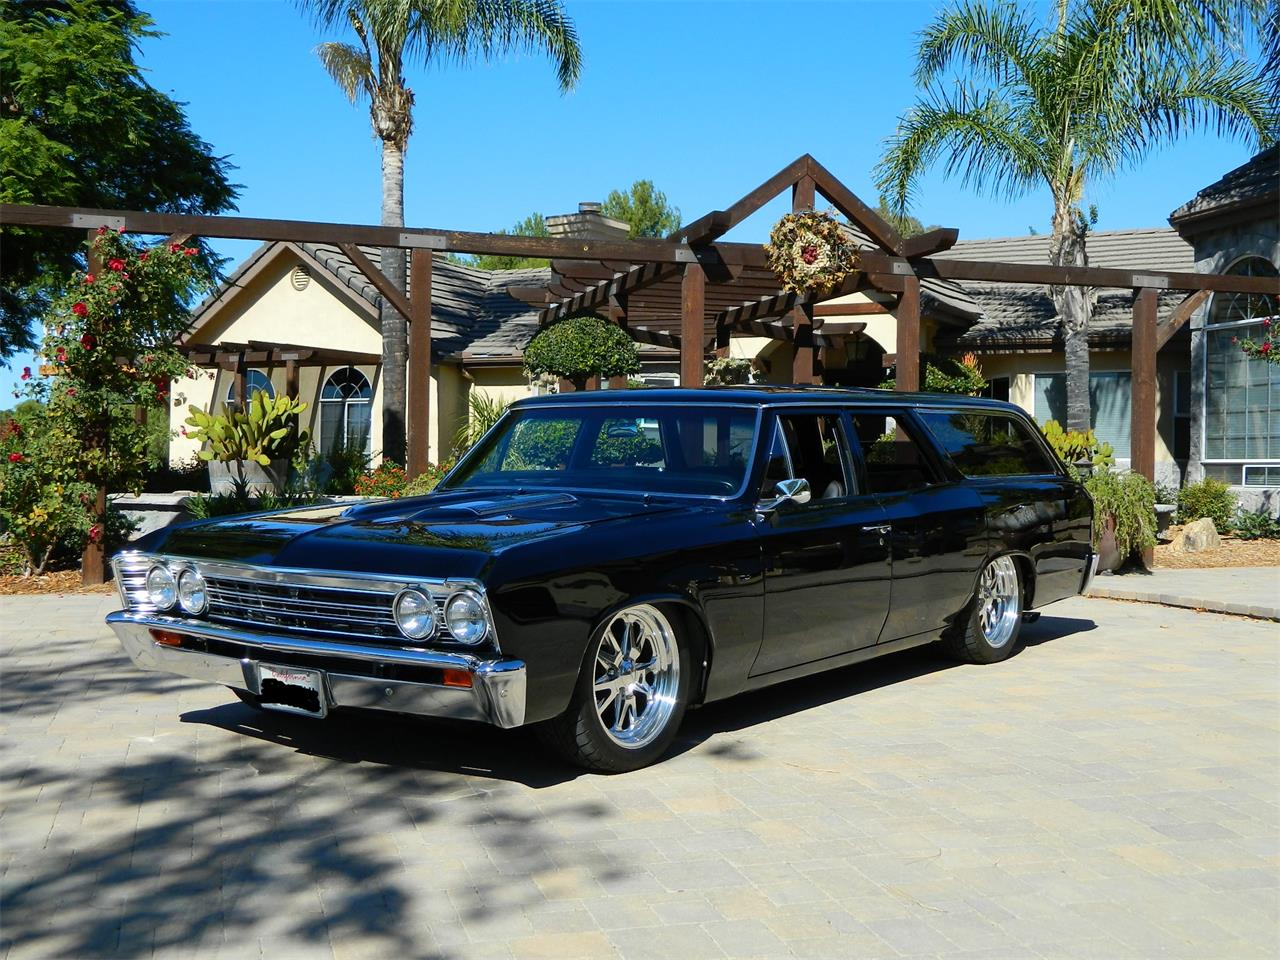 Large Picture of '67 Chevrolet Chevelle located in Orange California Offered by Classic Car Marketing, Inc. - PJY1